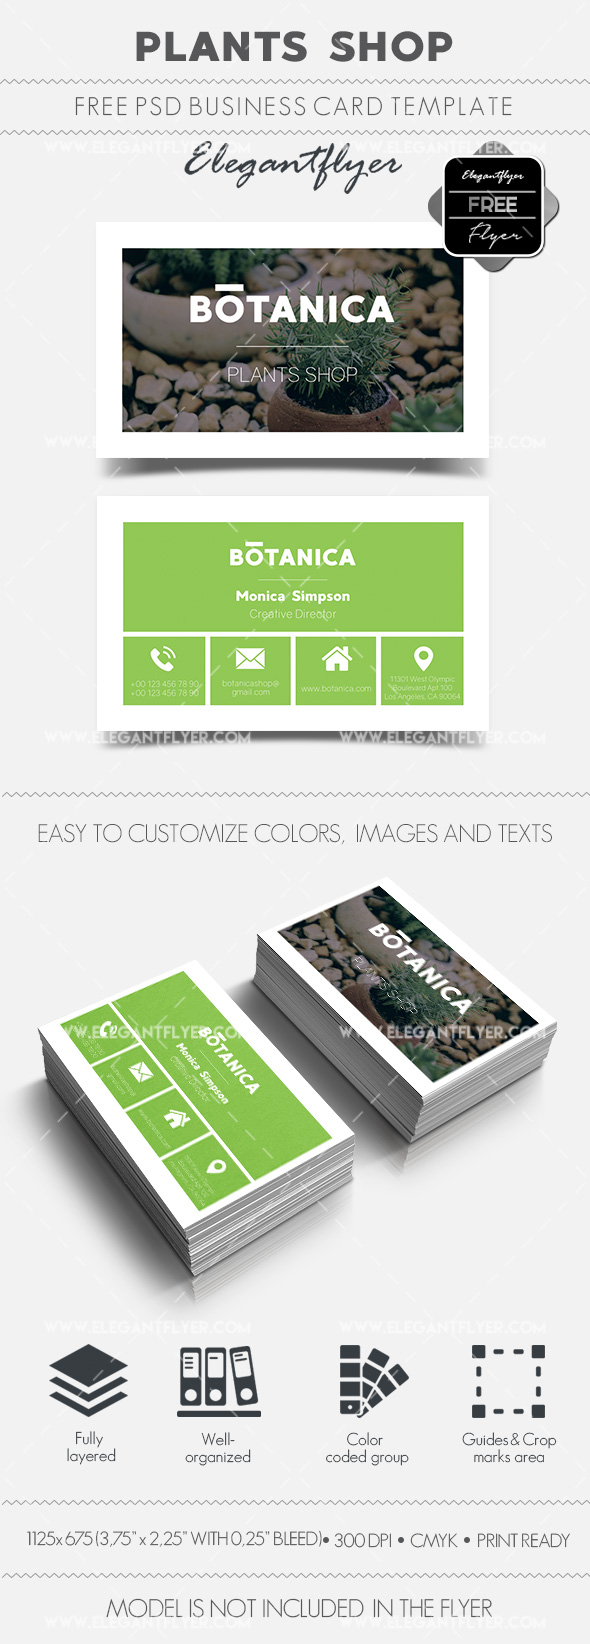 Plants Shop – Free Business Card Templates PSD